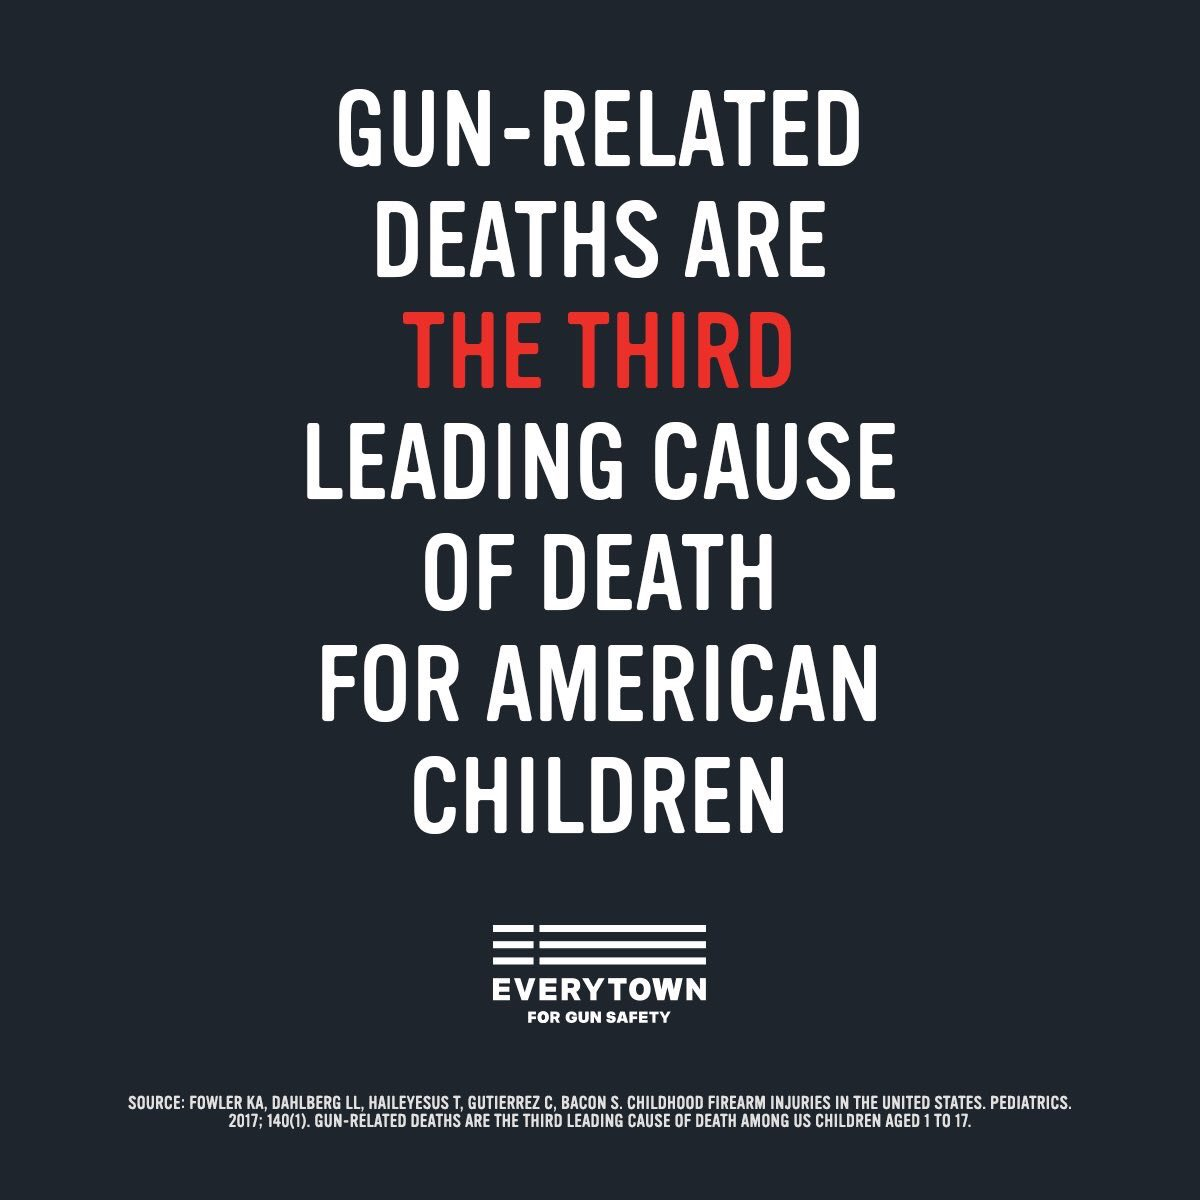 enough is enough. let's make a change. Text ACT to 644-33. https://t.co/1FFOzWau3P